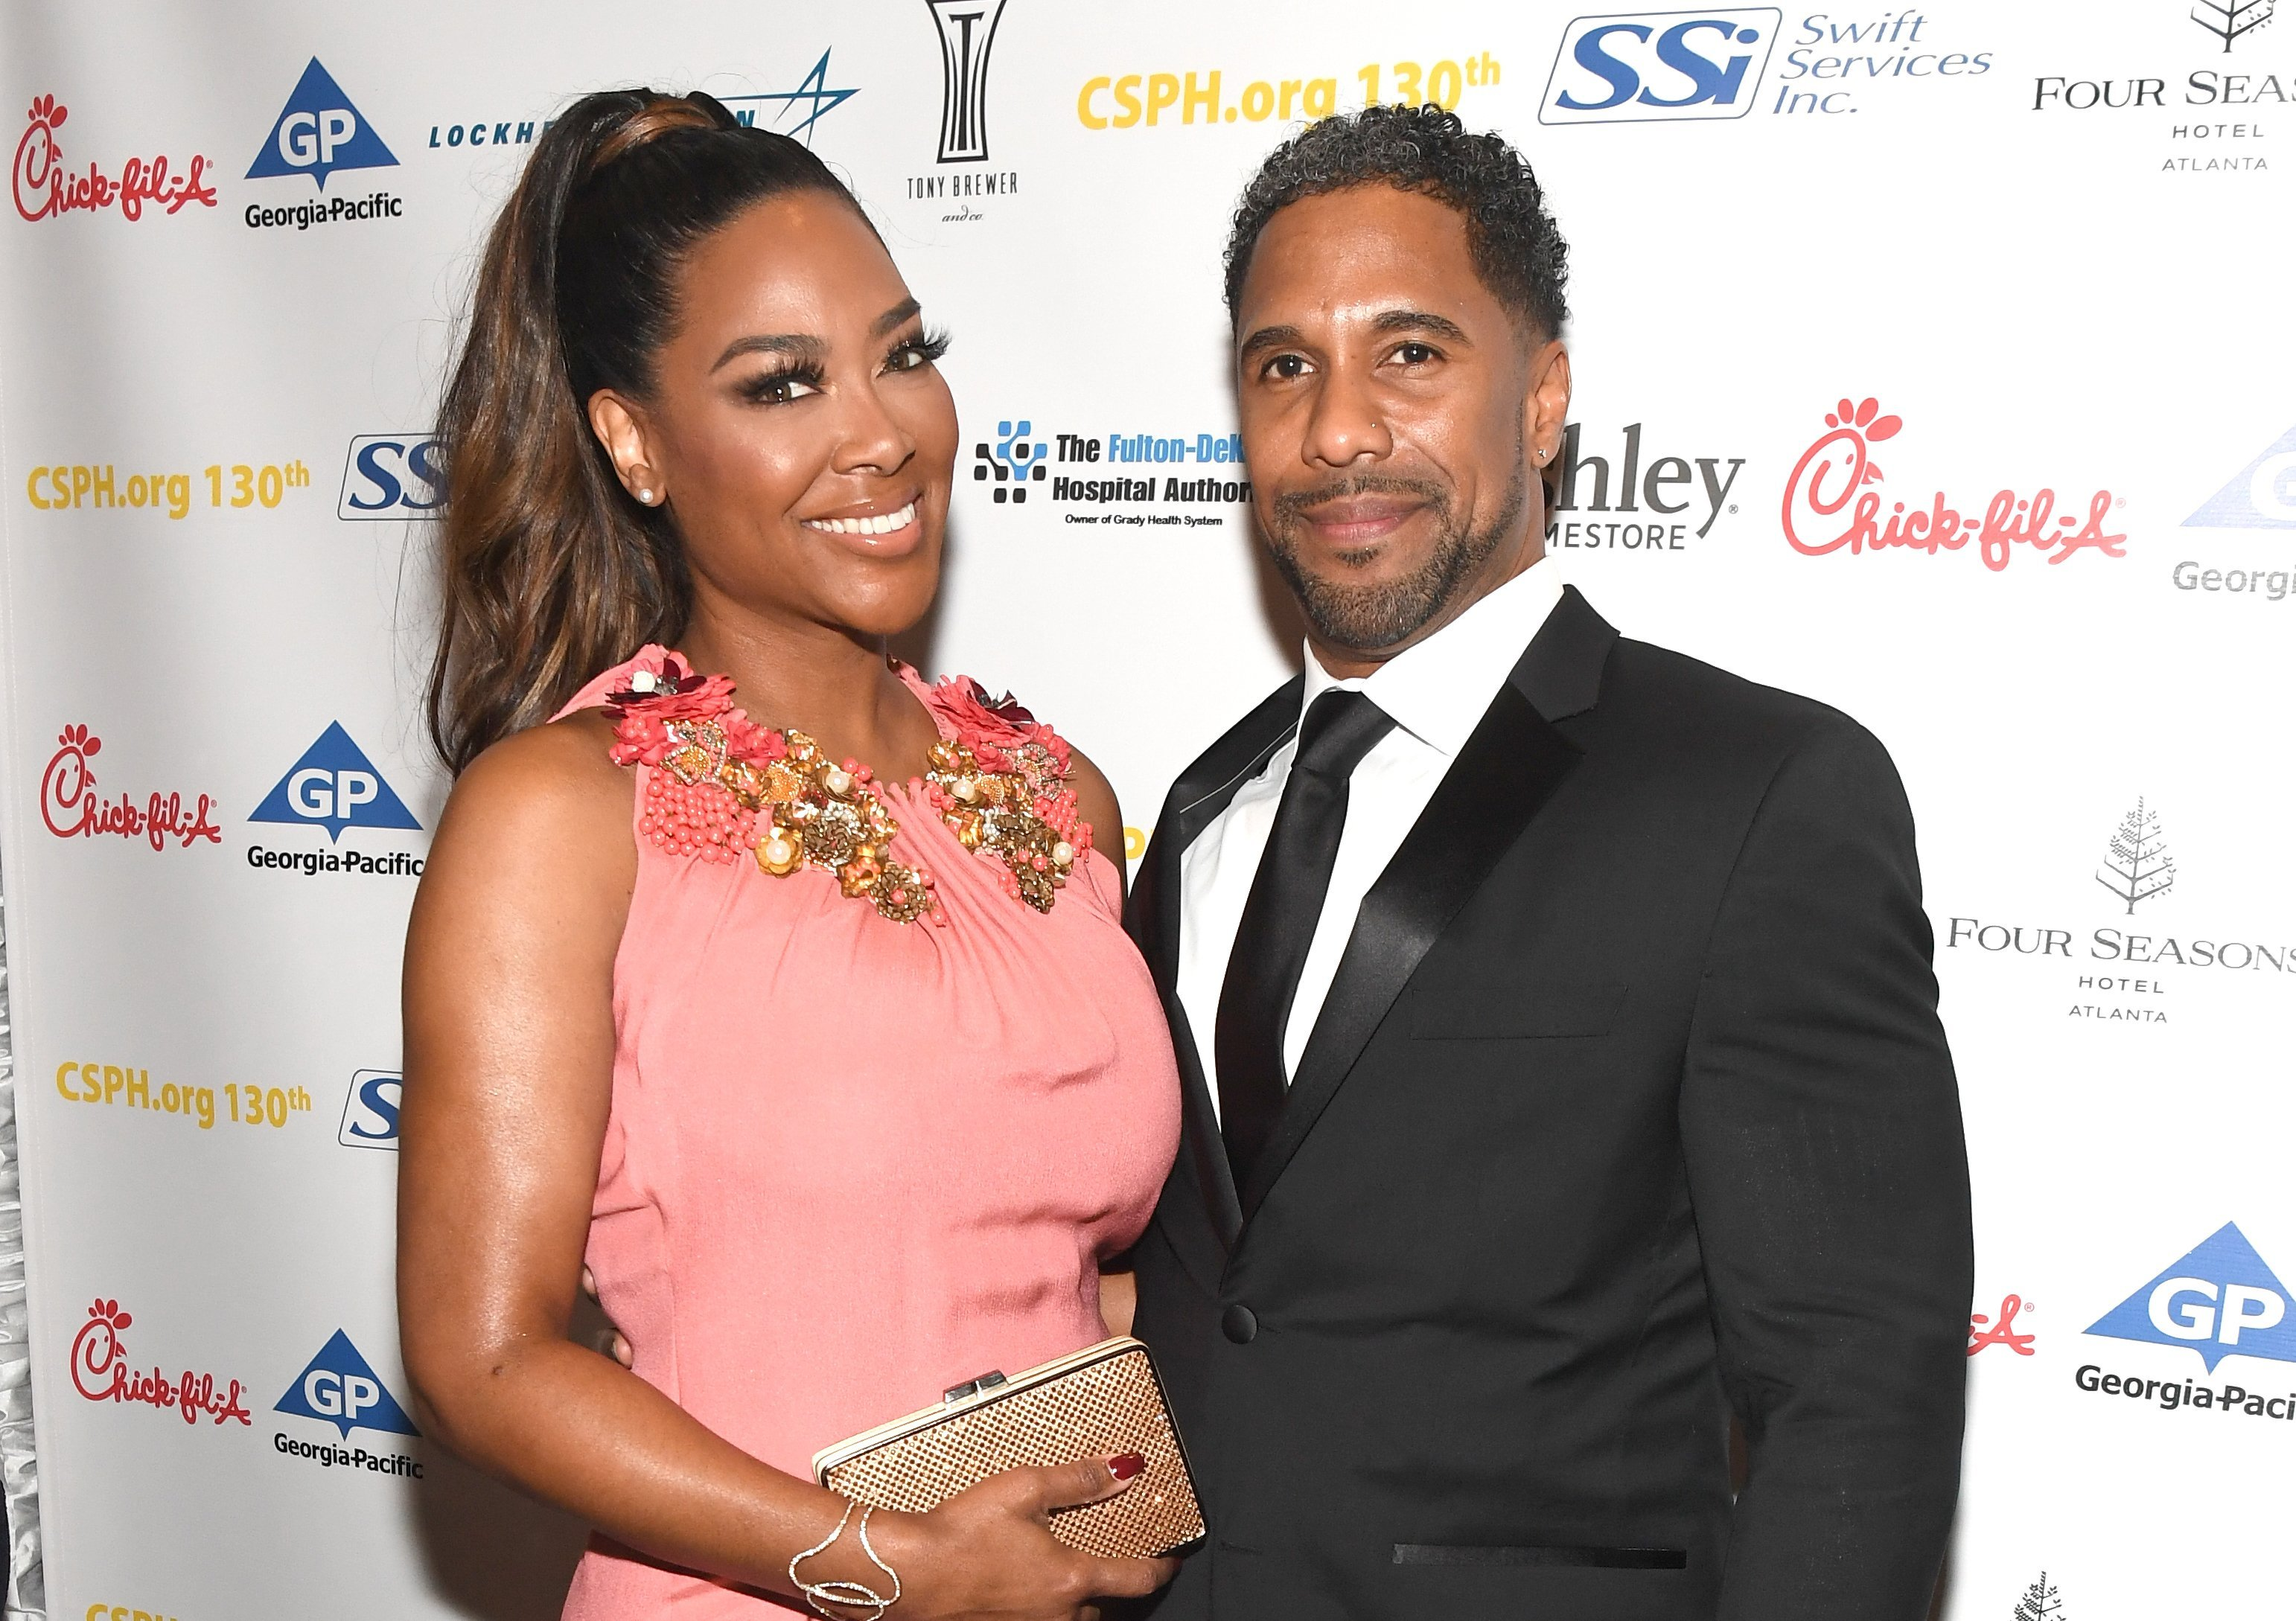 Kenya Moore & Marc Daly at Carrie Steele-Pitts Home 130th Anniversary Gala on Mar. 24, 2018 in Atlanta, Georgia | Photo: Getty Images